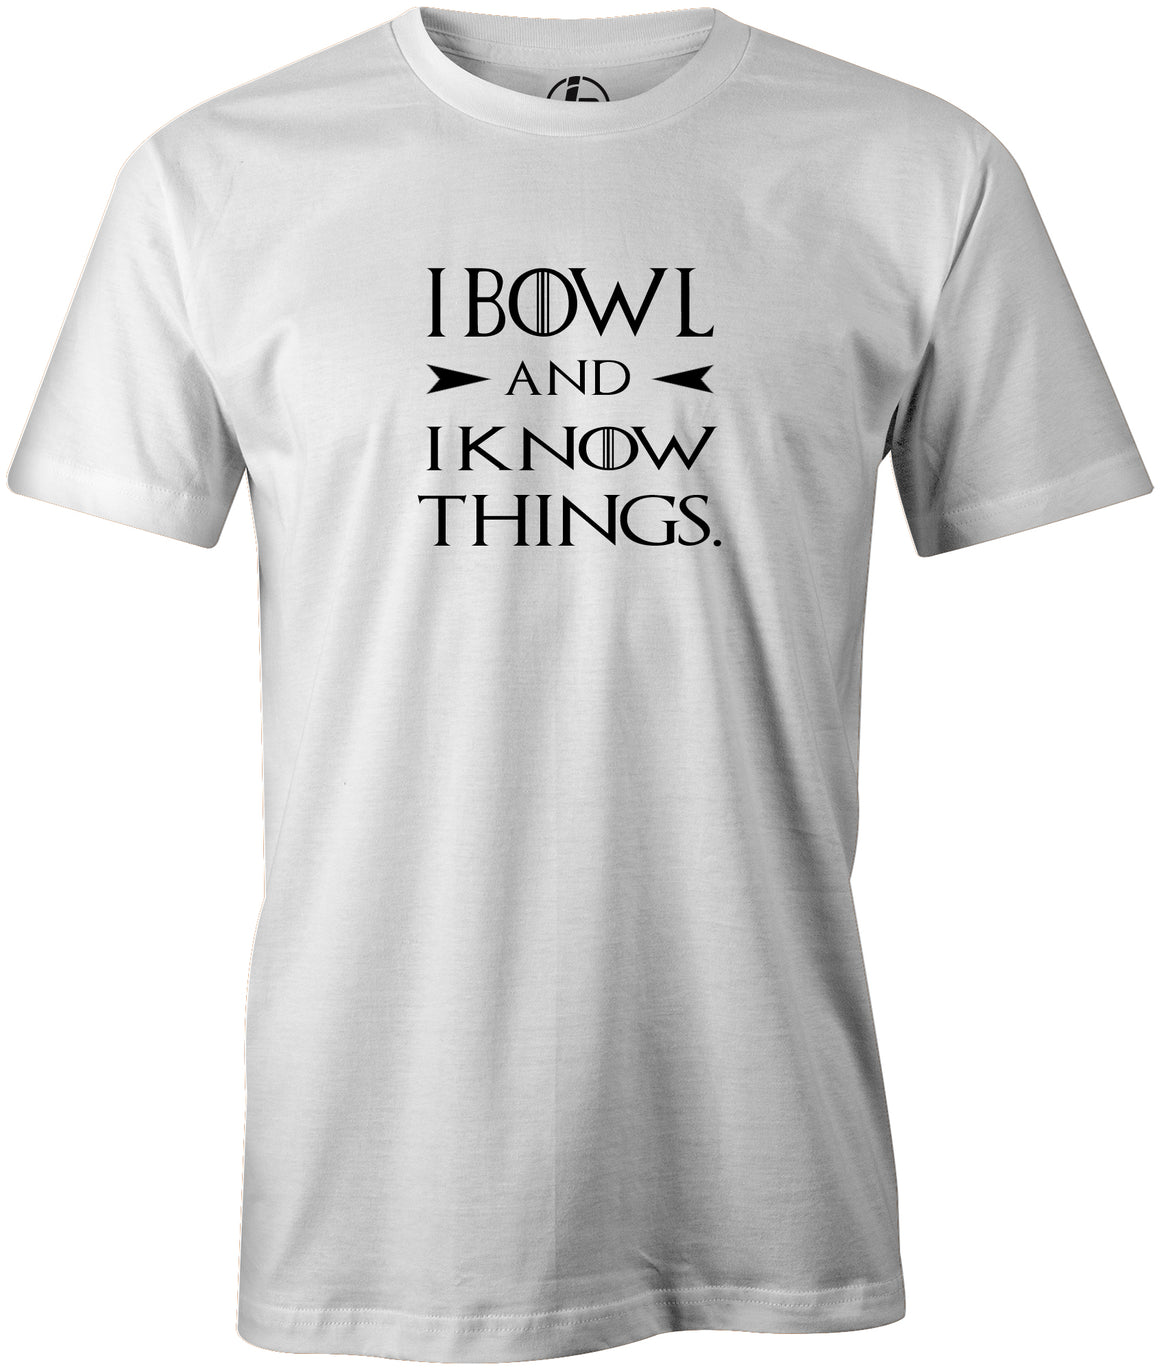 I Bowl and I Know Things